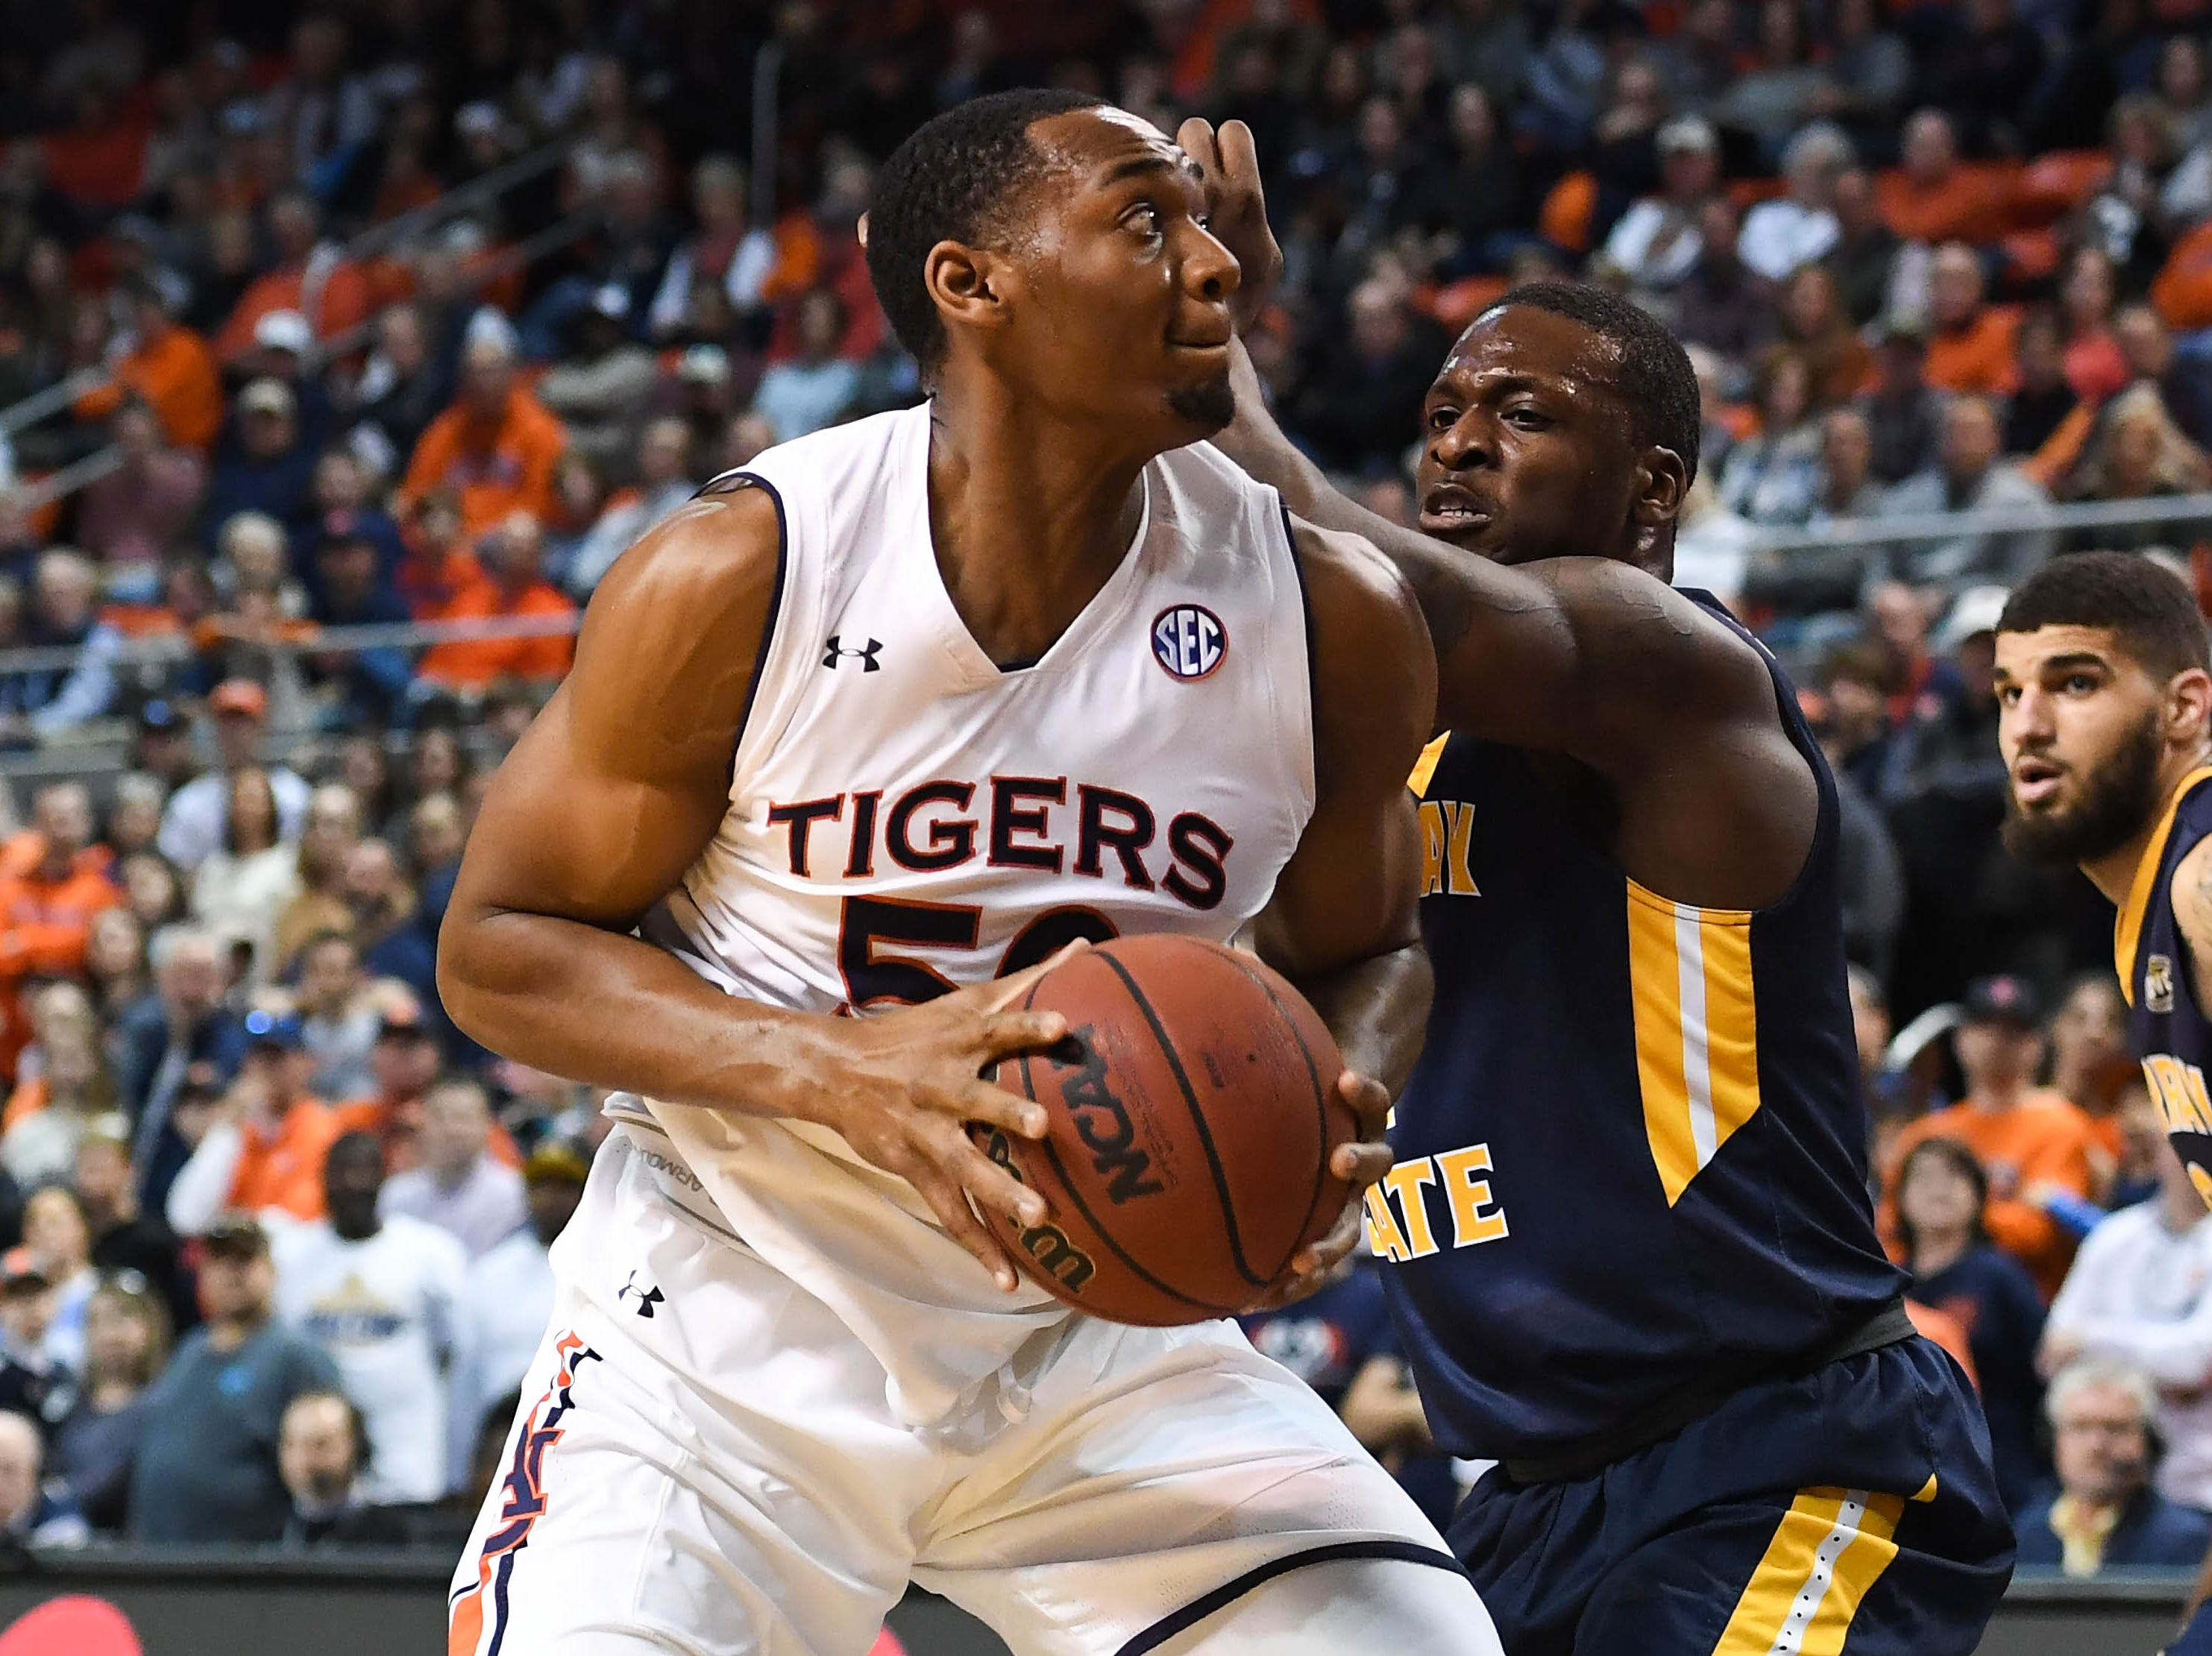 Dec 22, 2018; Auburn, AL, USA; Auburn Tigers center Austin Wiley (50) is defended by Murray State Racers forward Brion Sanchious (4) during the first half at Auburn Arena. Mandatory Credit: Shanna Lockwood-USA TODAY Sports